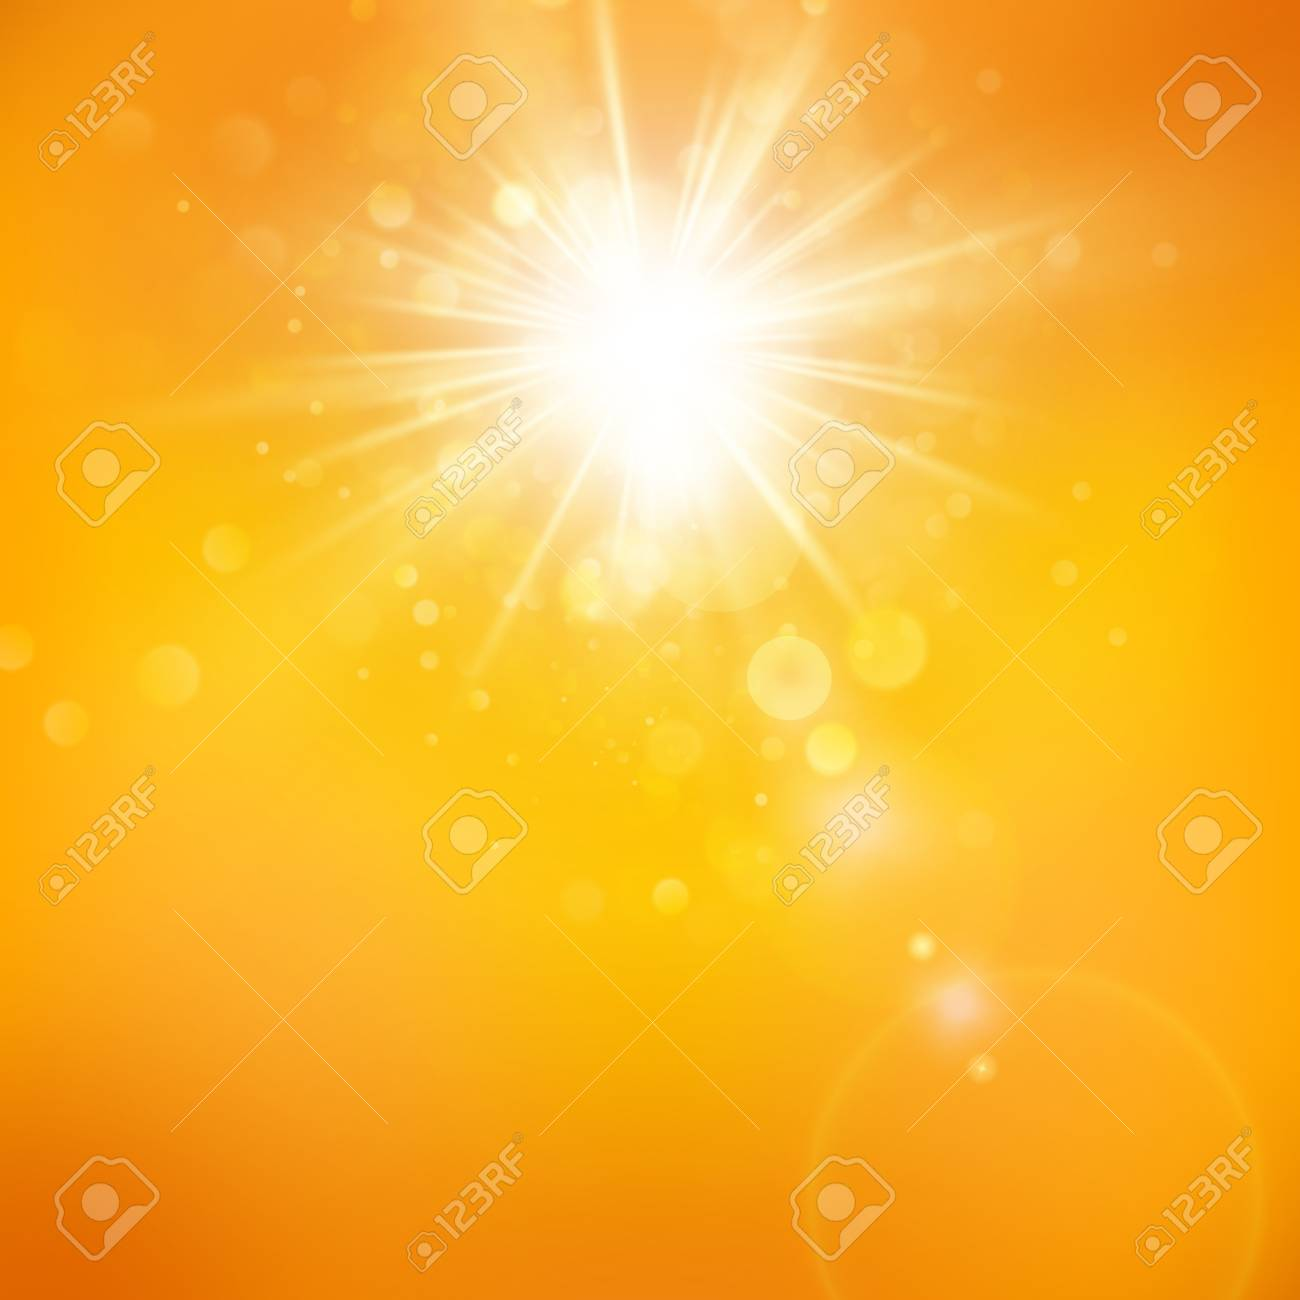 Enjoy The Sunshine Warm Day Light Summer Background With A 1300x1300